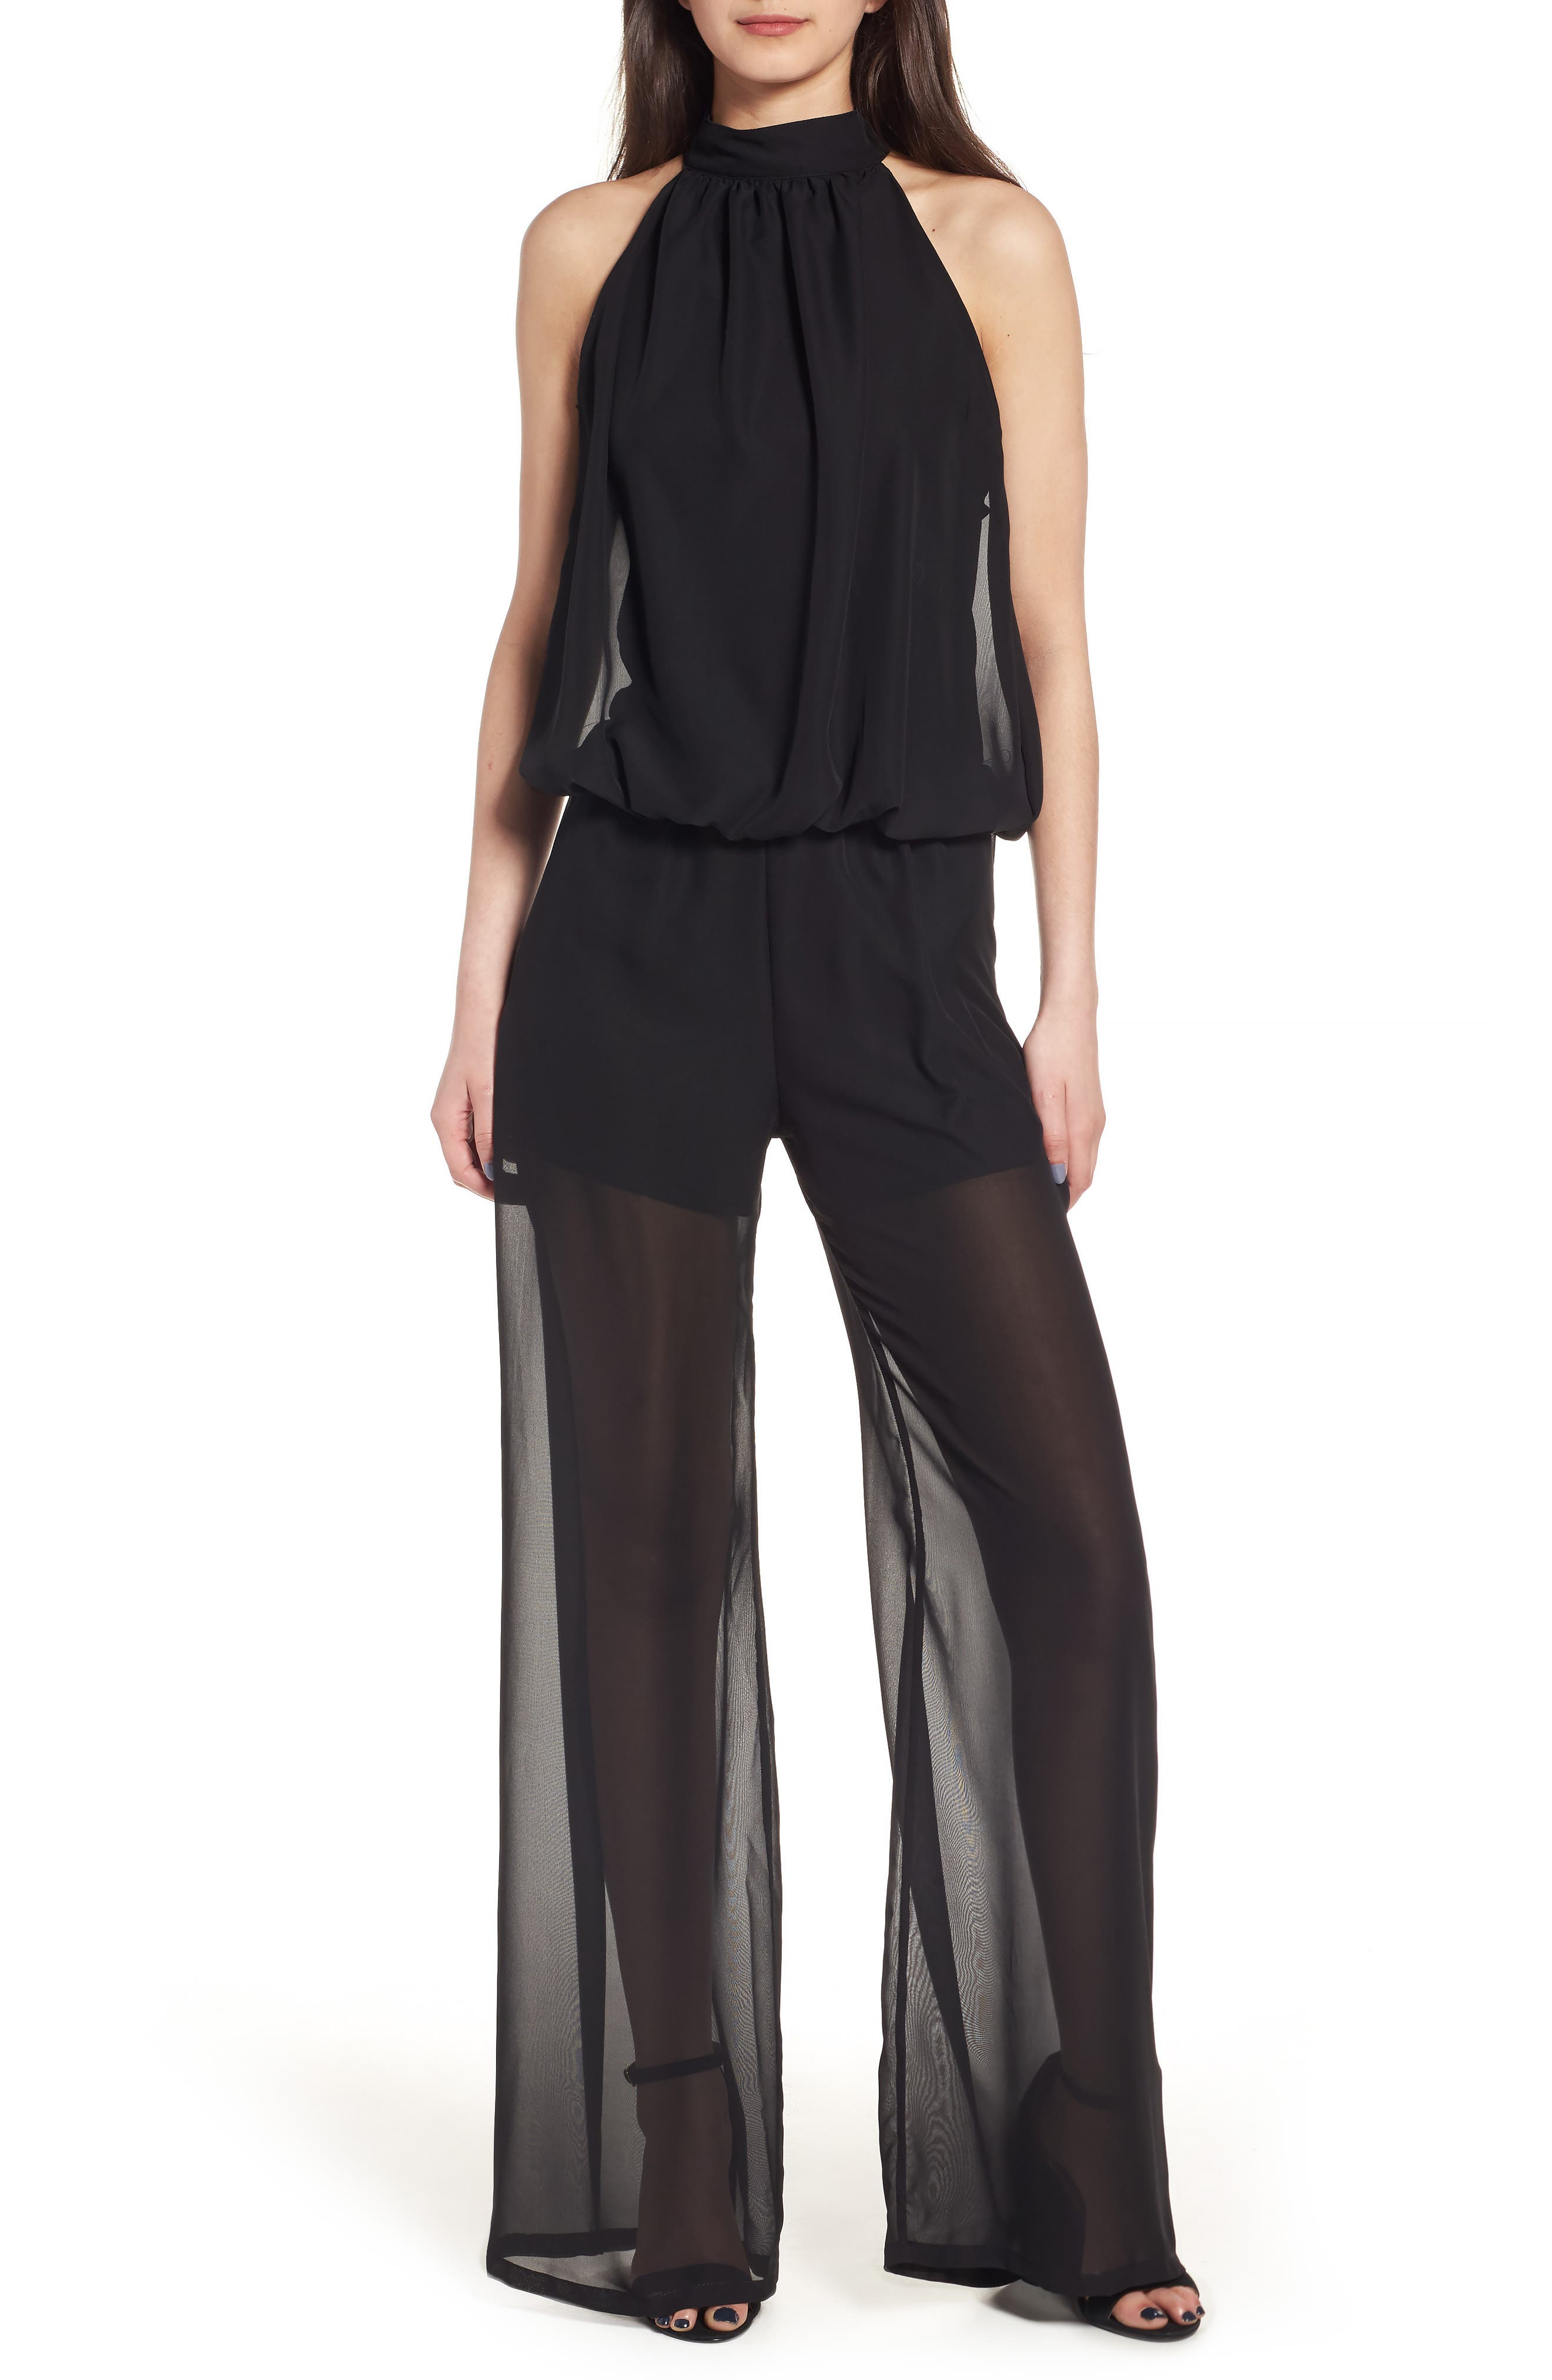 Alternate Image 1 Selected - Sentimental NY Halter Chiffon Jumpsuit